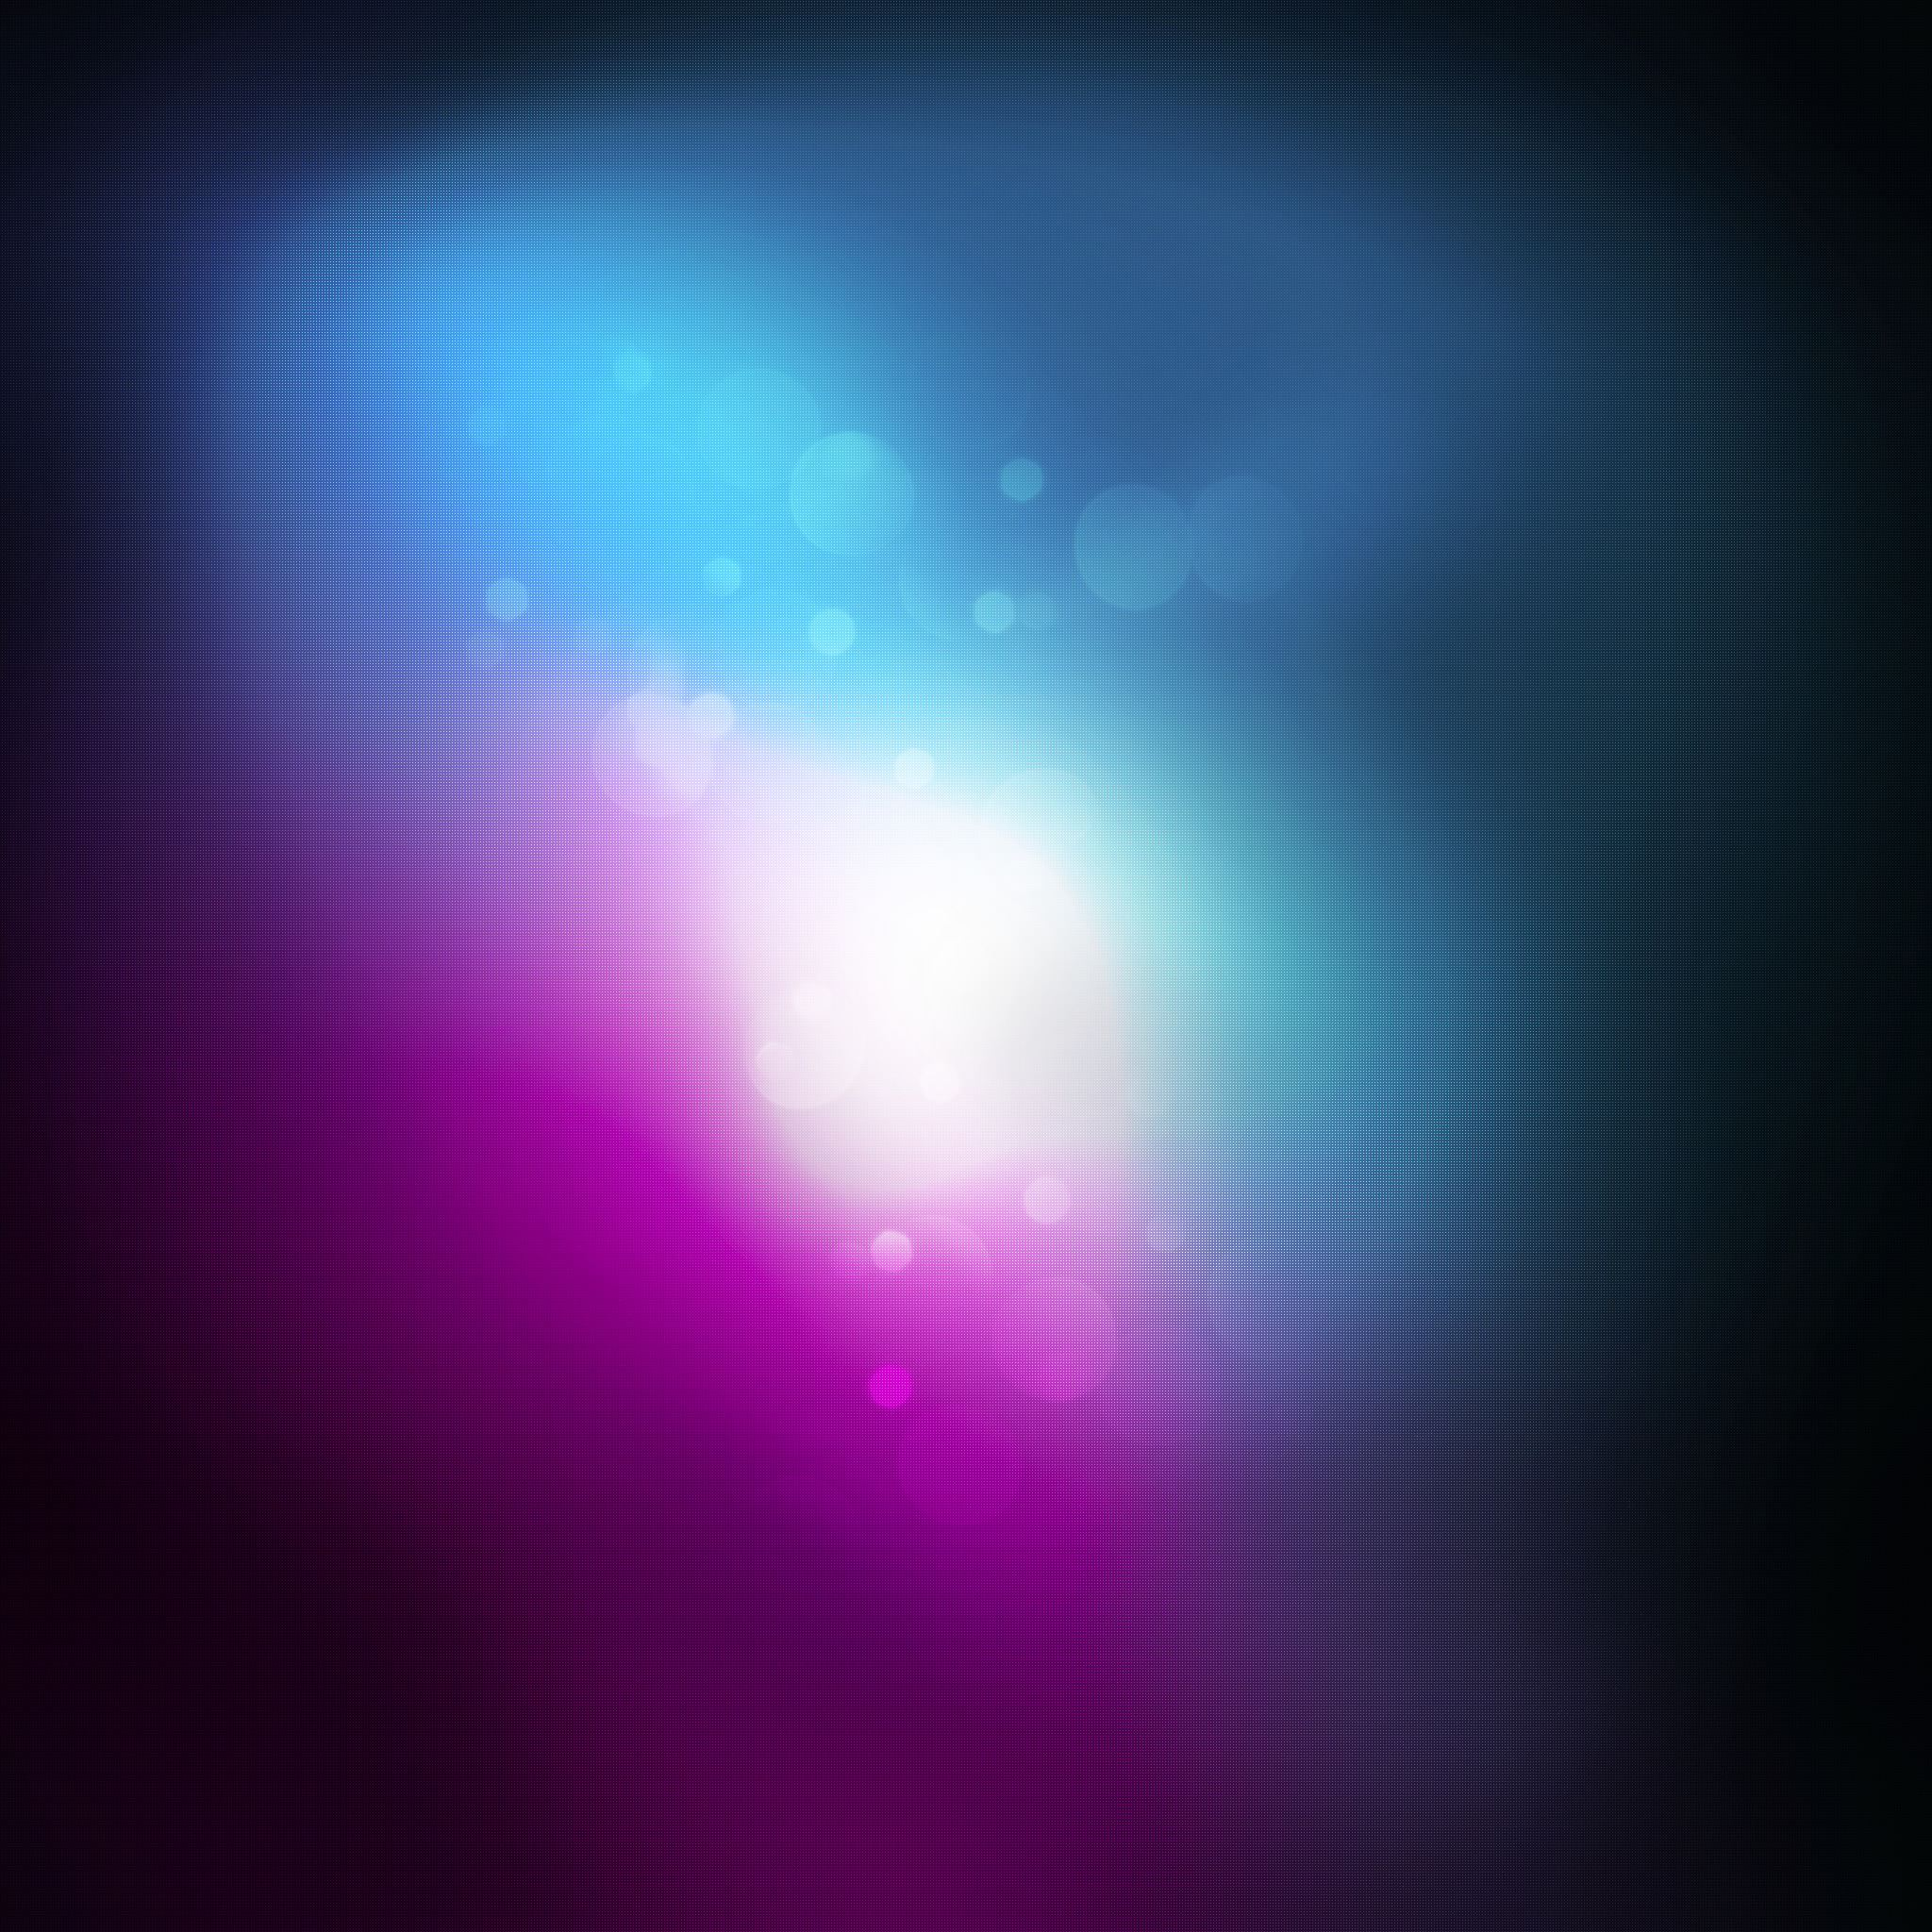 Purple Apple Space iPad Air wallpaper